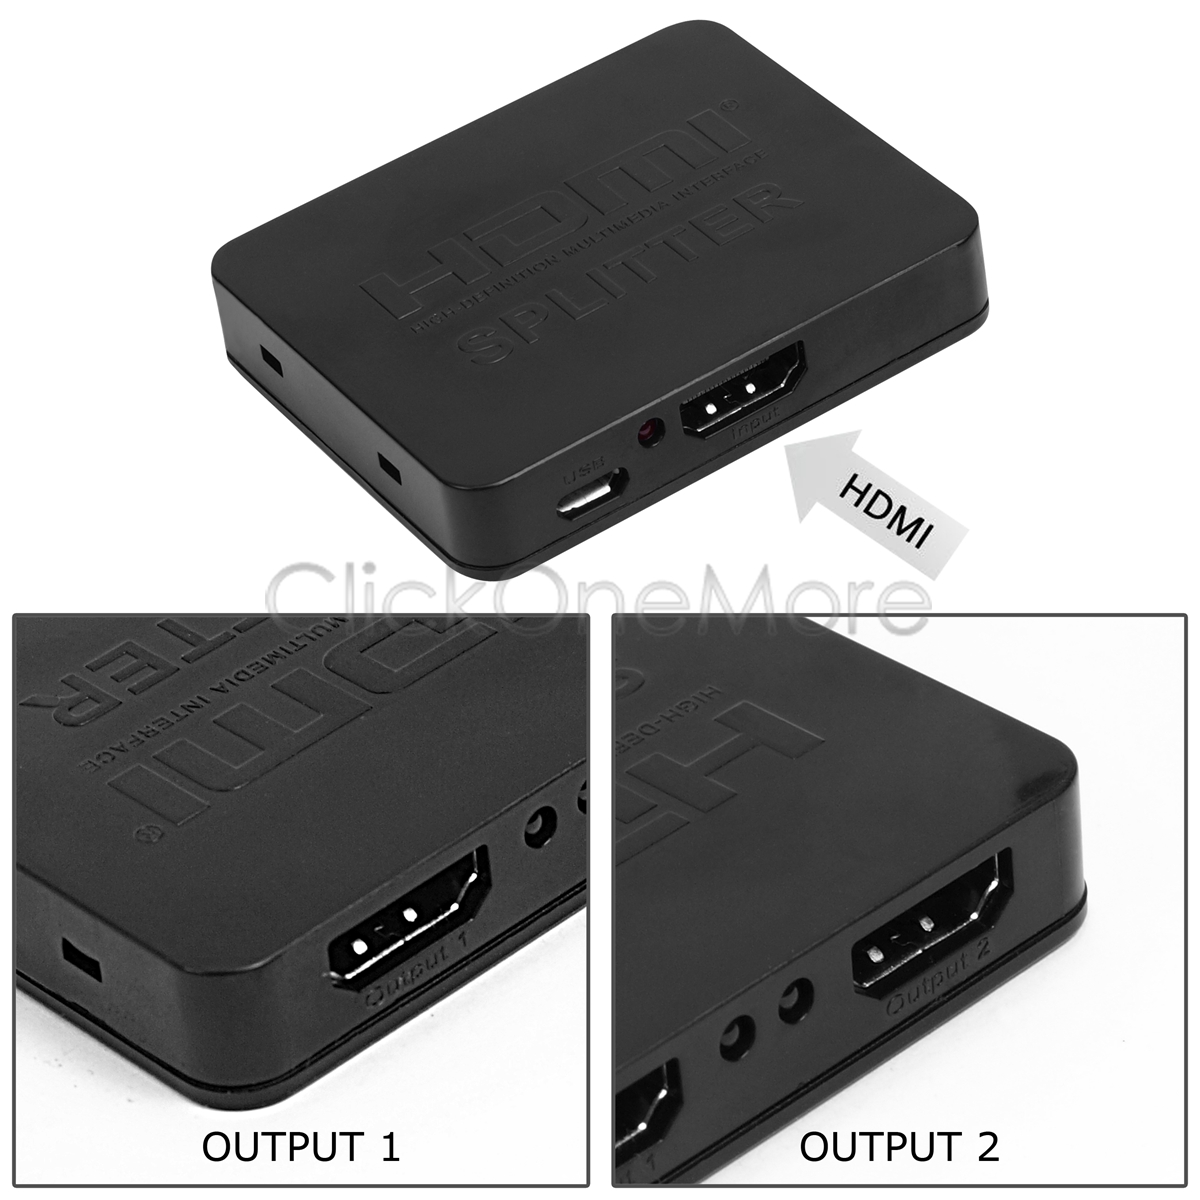 hdmi verteiler splitter adapter 1 in 2 out f r full hd 1080p hdtv 3d de ebay. Black Bedroom Furniture Sets. Home Design Ideas